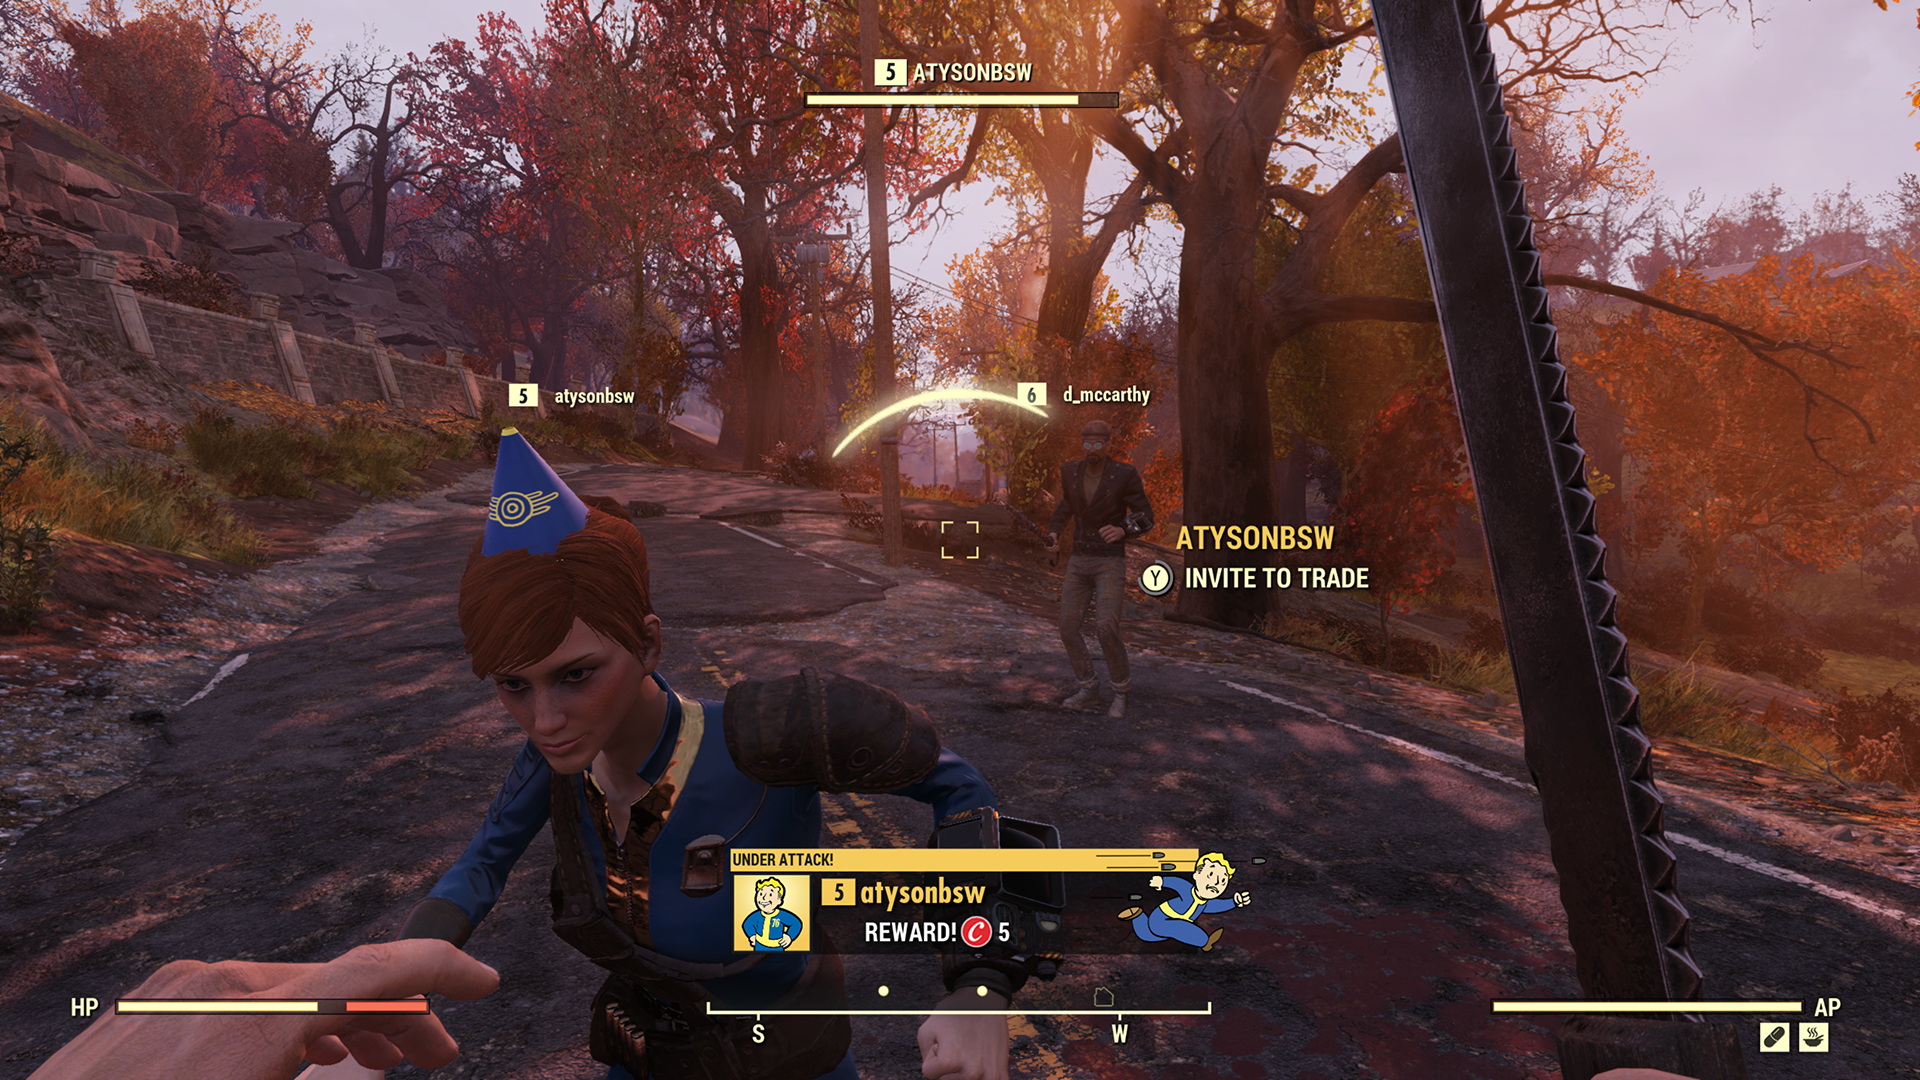 Takhle bude fungovat PvP ve Fallout 76 Fallout76 Attack 2